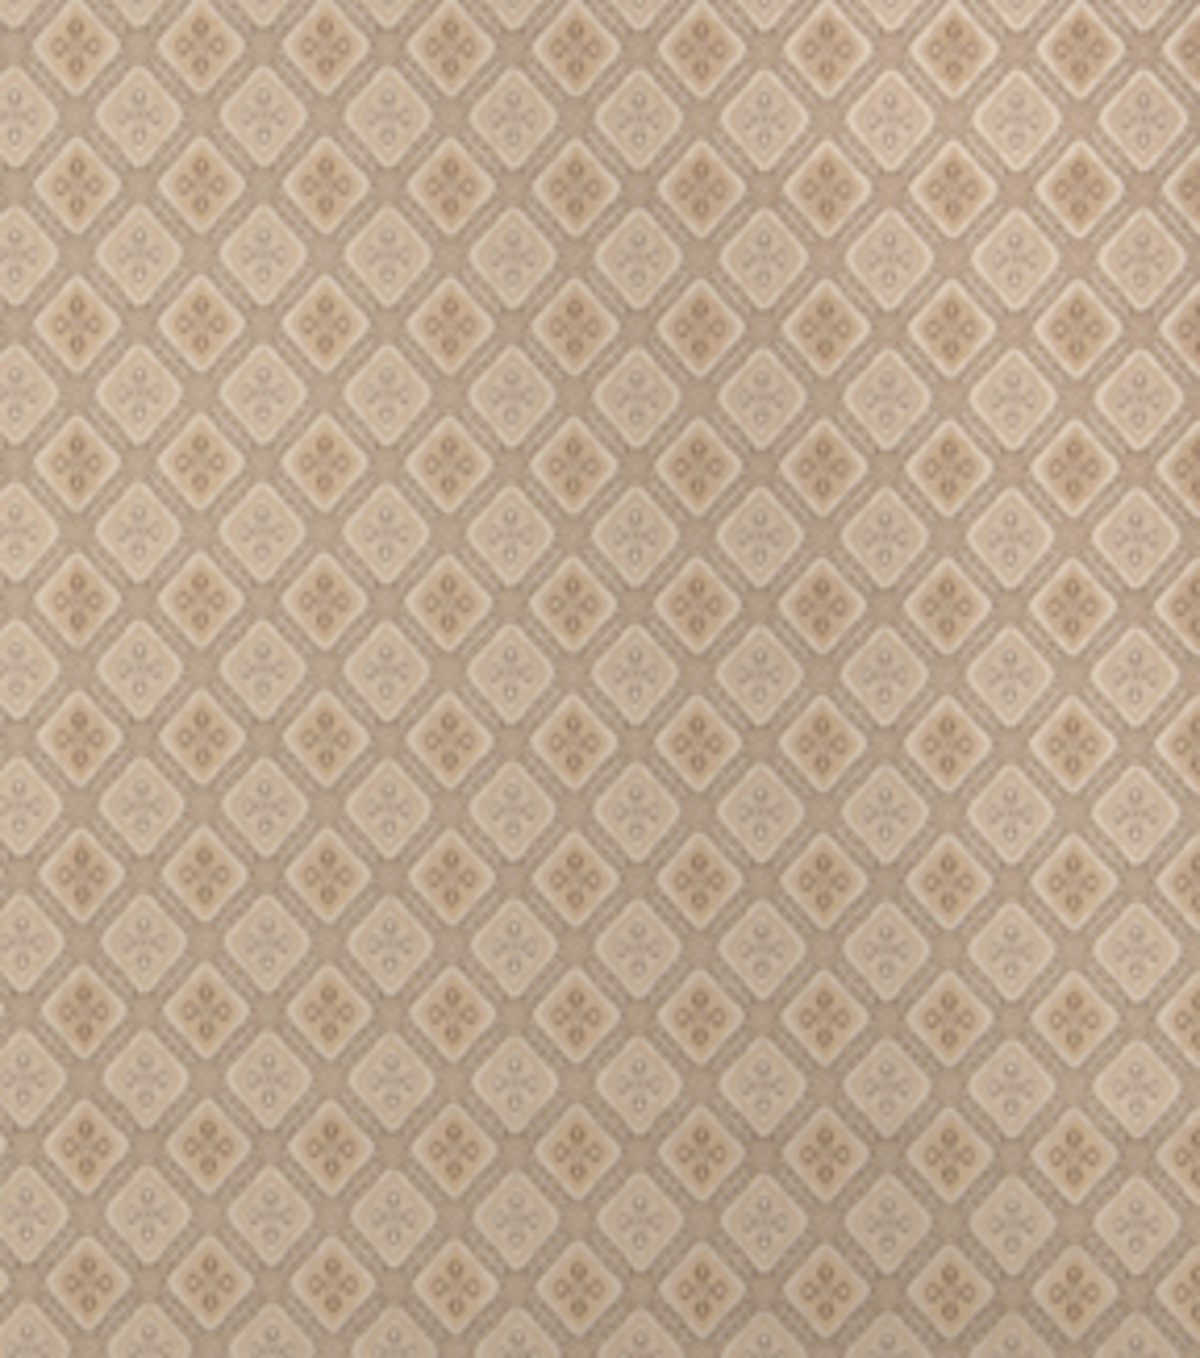 Home Decor 8\u0022x8\u0022 Fabric Swatch-Print Fabric Eaton Square Mystery Praline